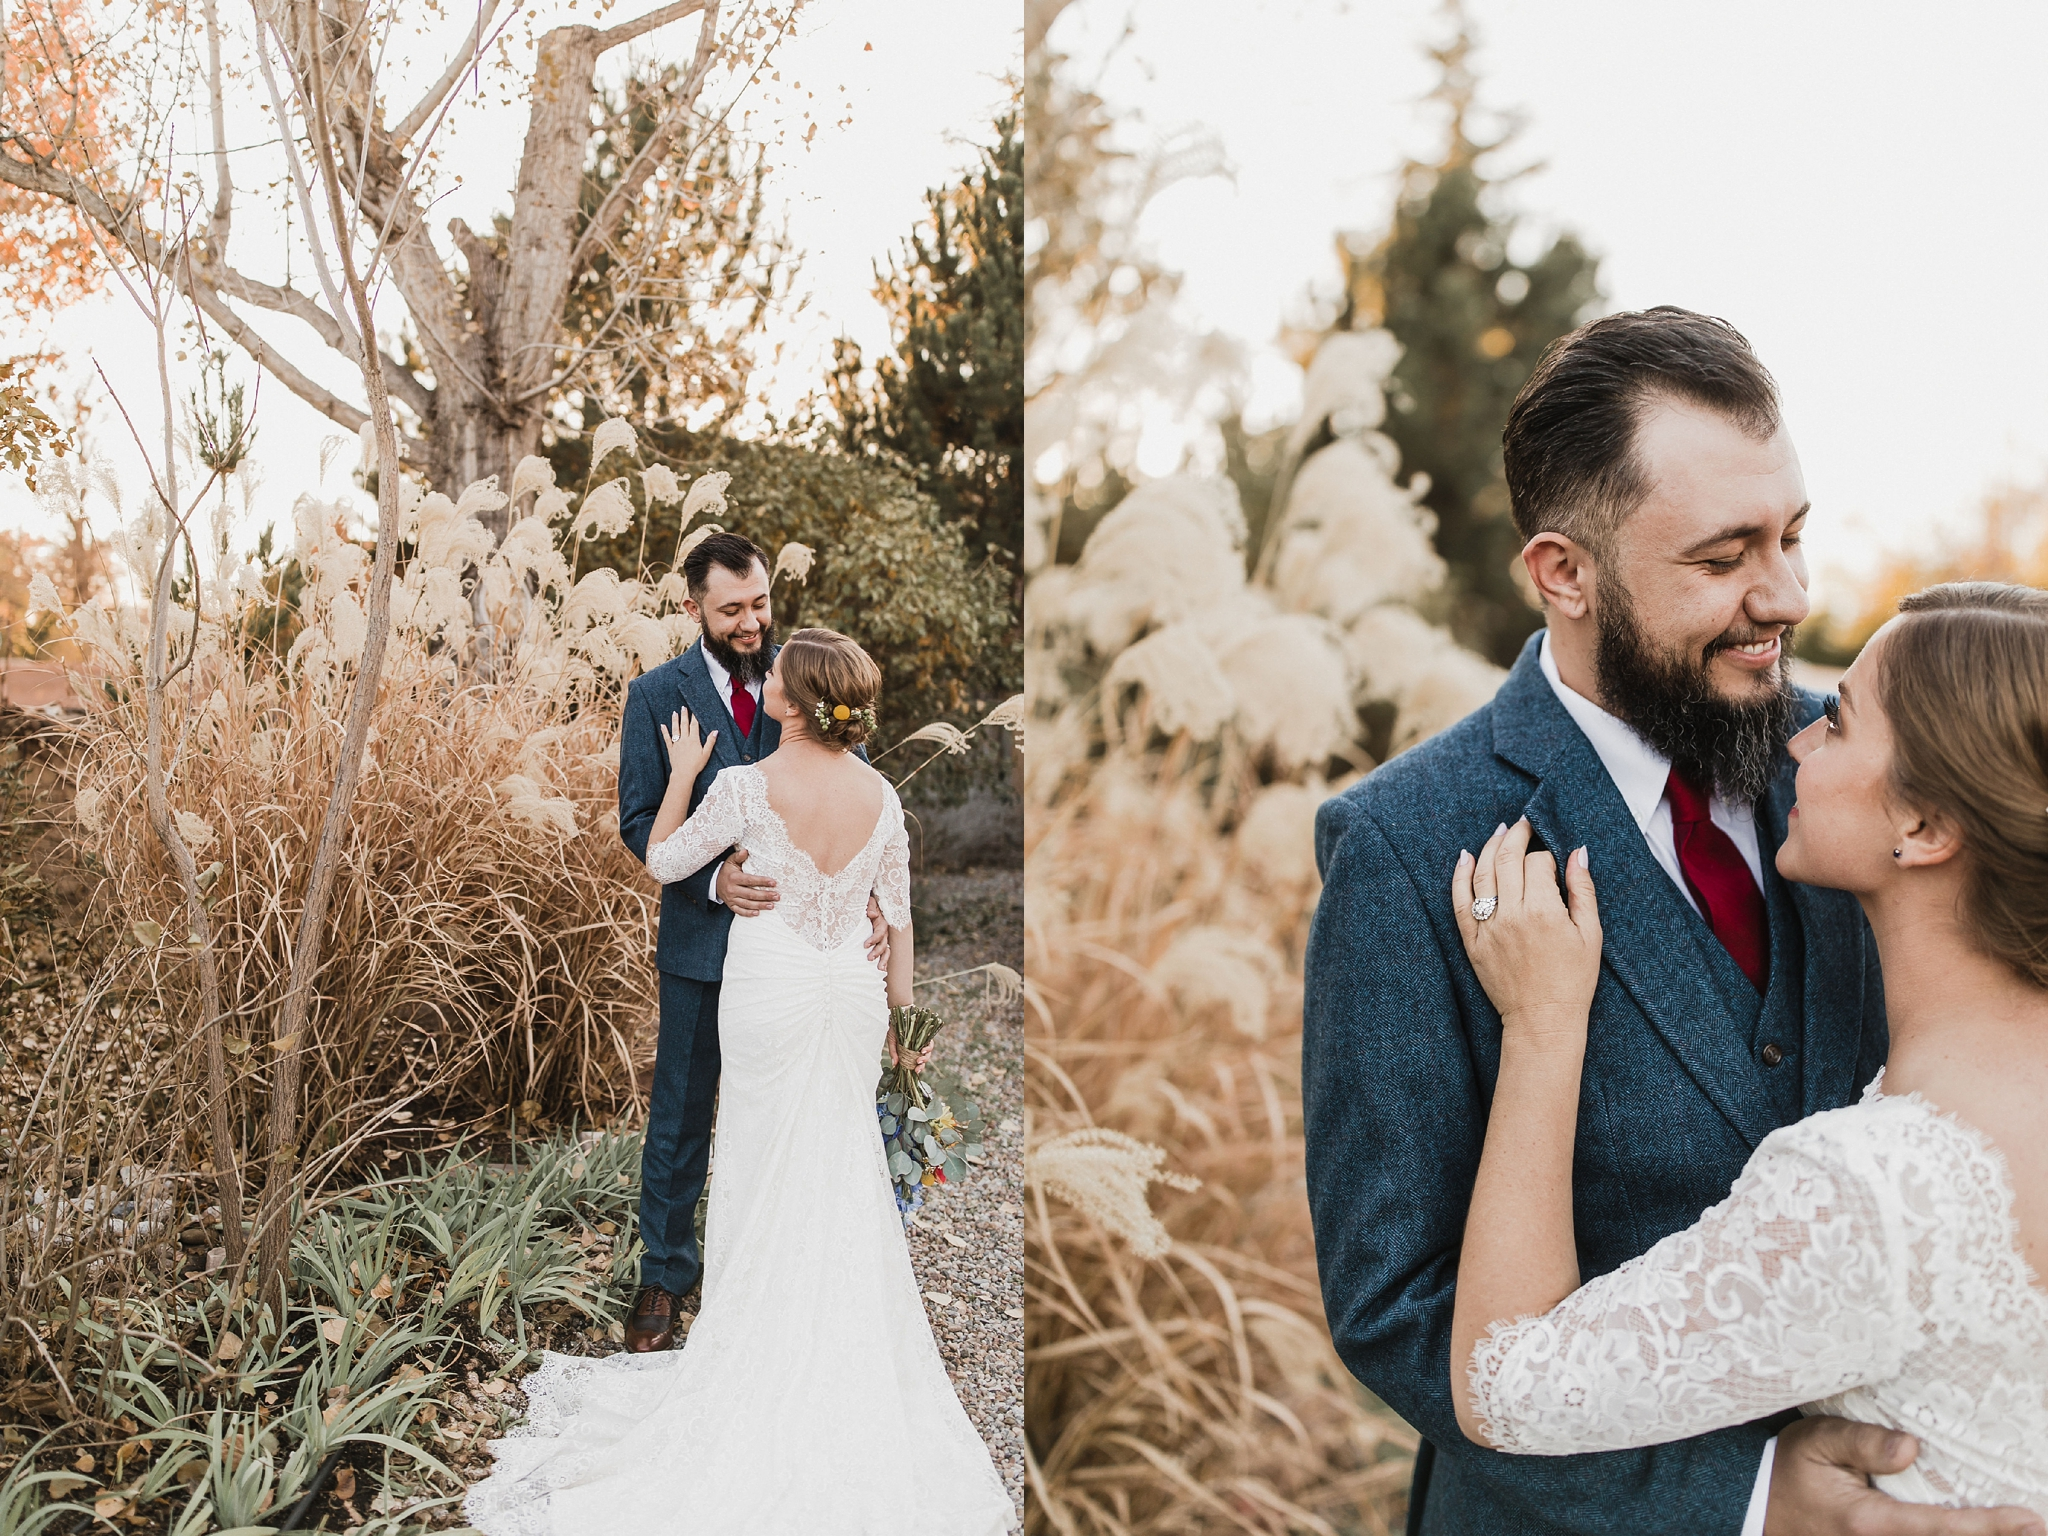 Alicia+lucia+photography+-+albuquerque+wedding+photographer+-+santa+fe+wedding+photography+-+new+mexico+wedding+photographer+-+albuquerque+wedding+-+sarabande+bed+breakfast+-+bed+and+breakfast+wedding_0066.jpg